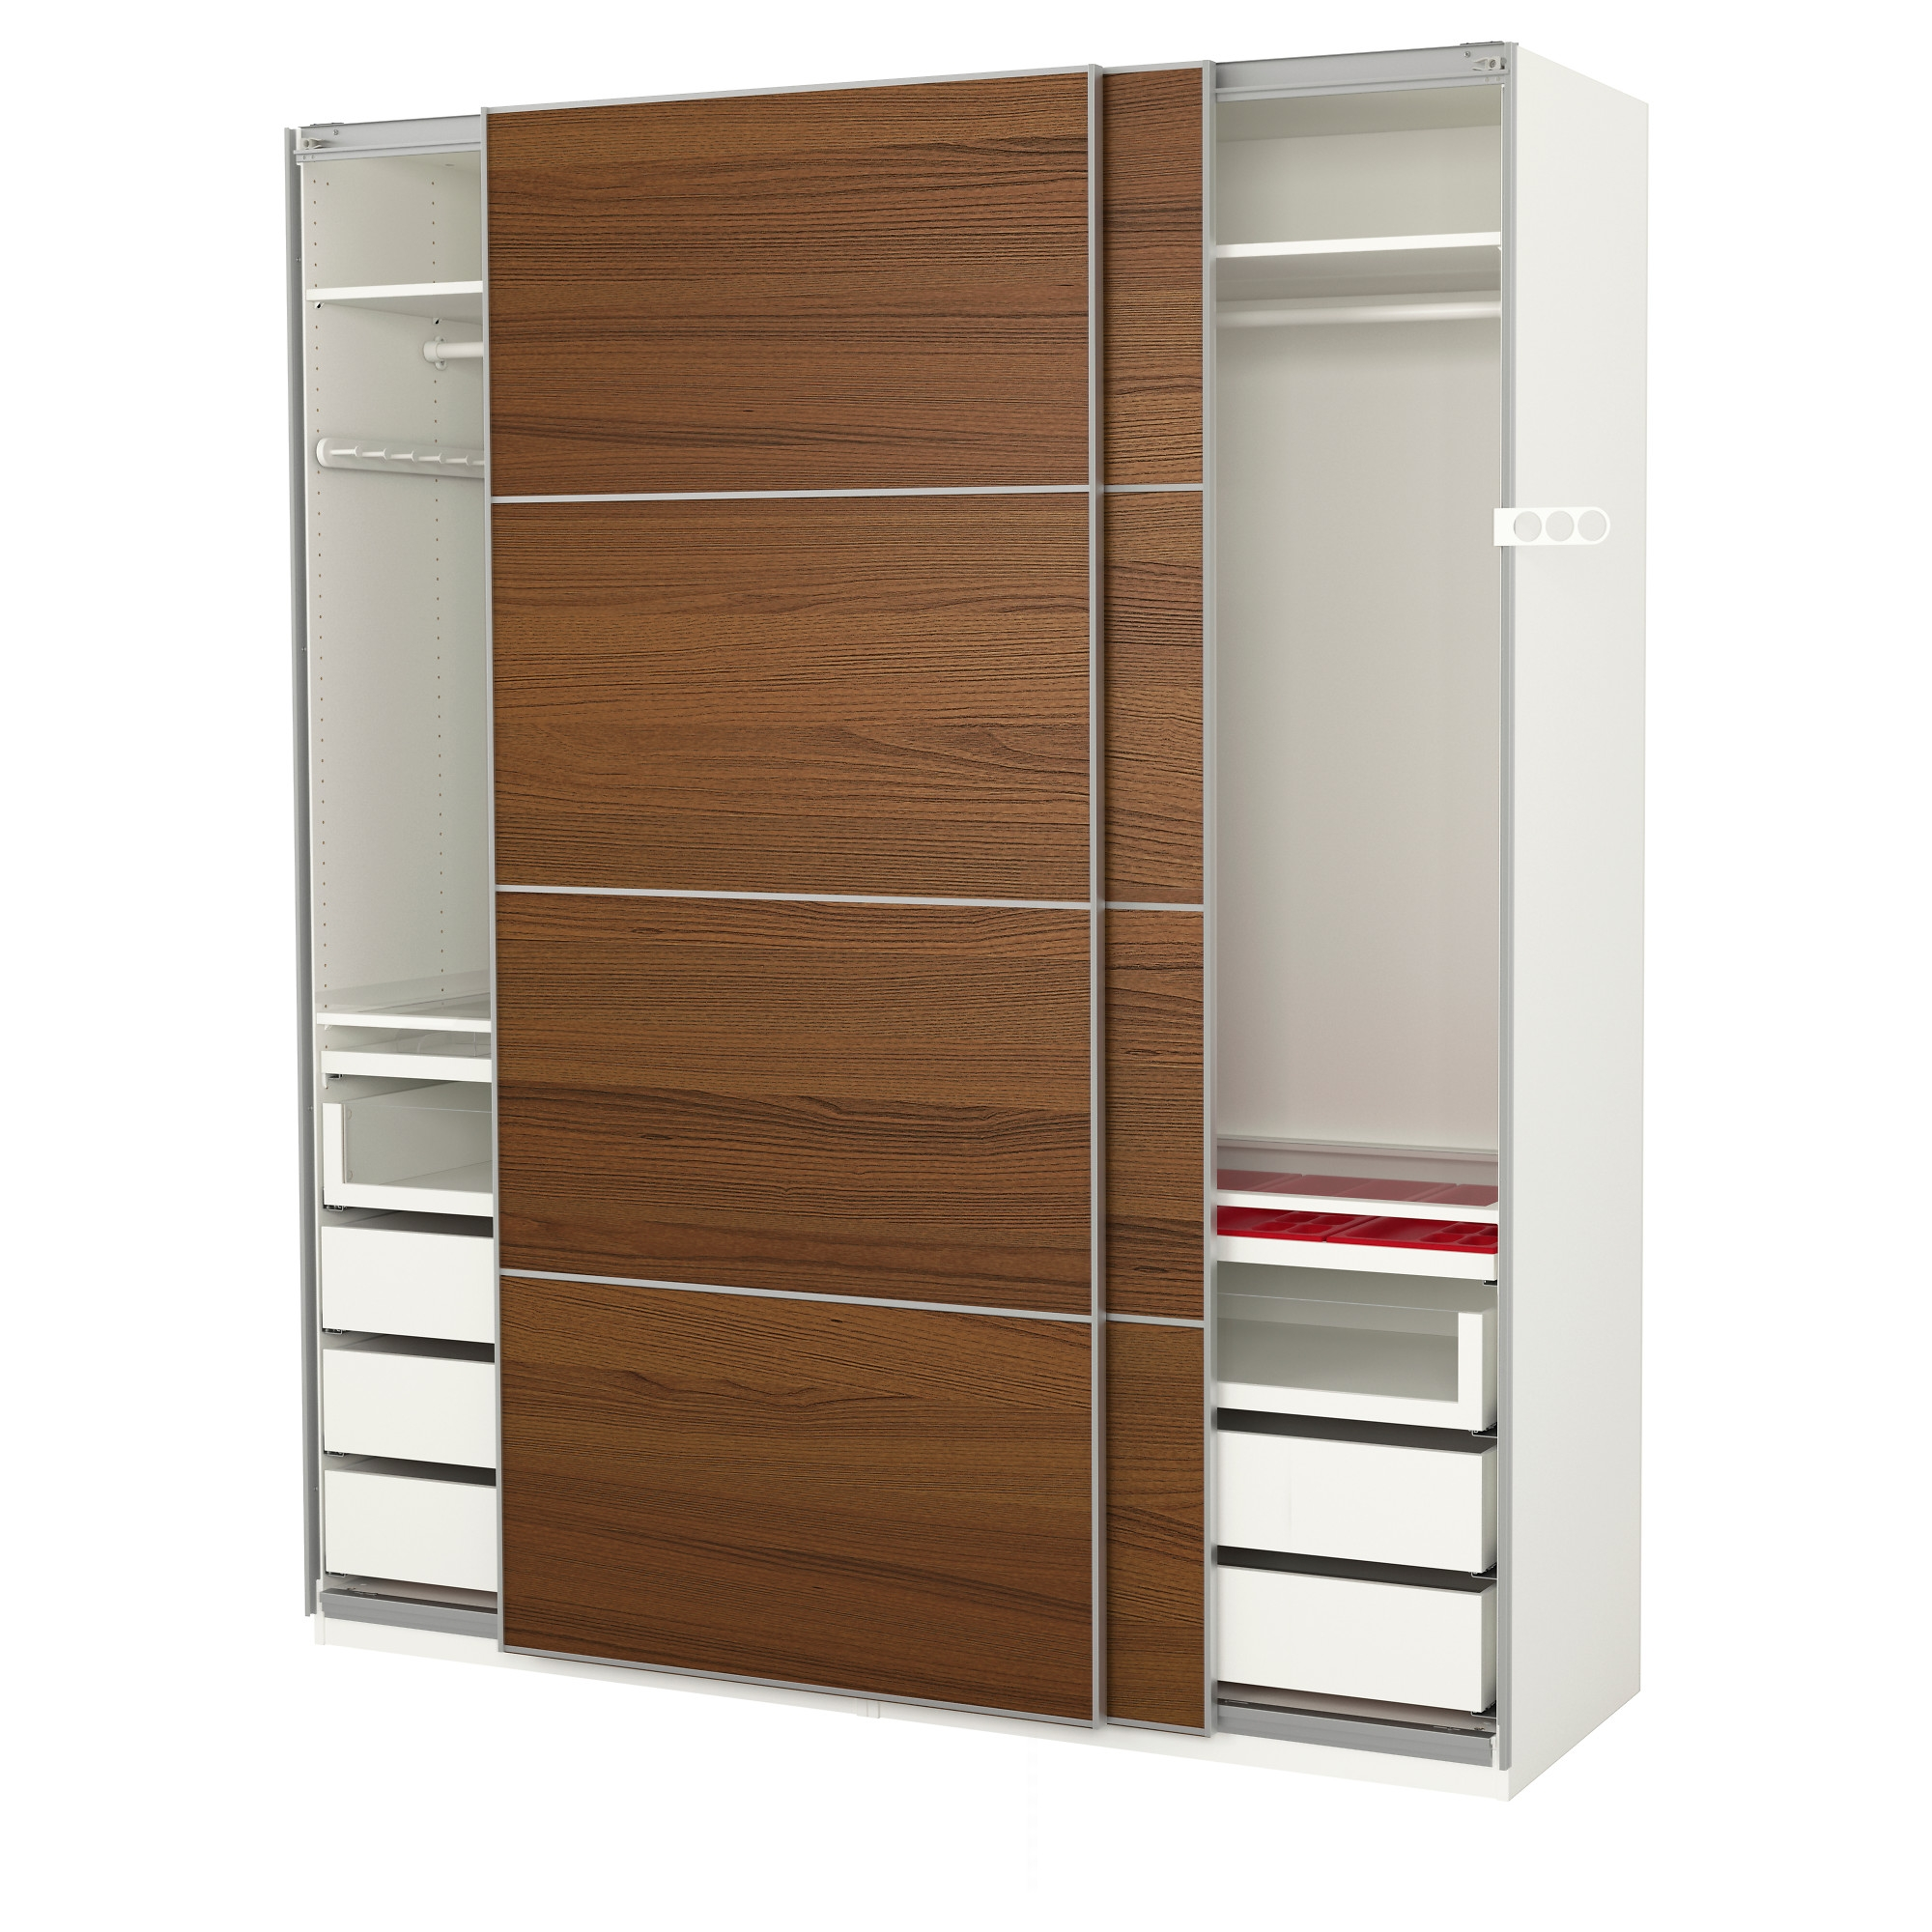 Wardrobes Pax System Ikea Inside Wardrobe With Shelves And Drawers (View 12 of 15)